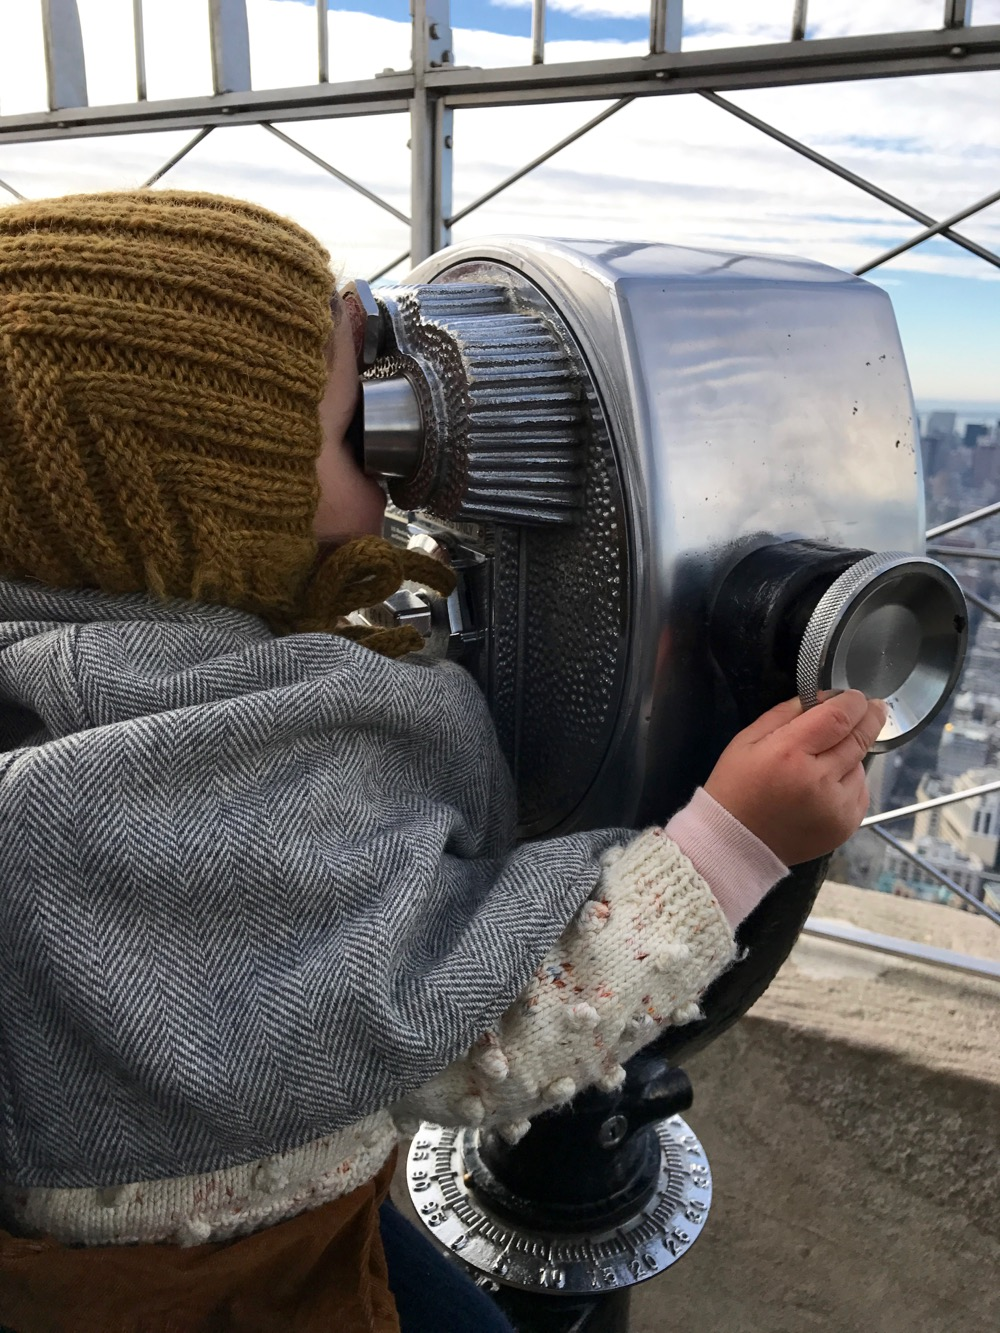 Empire State Building 3 - Babyccino NYC Guide